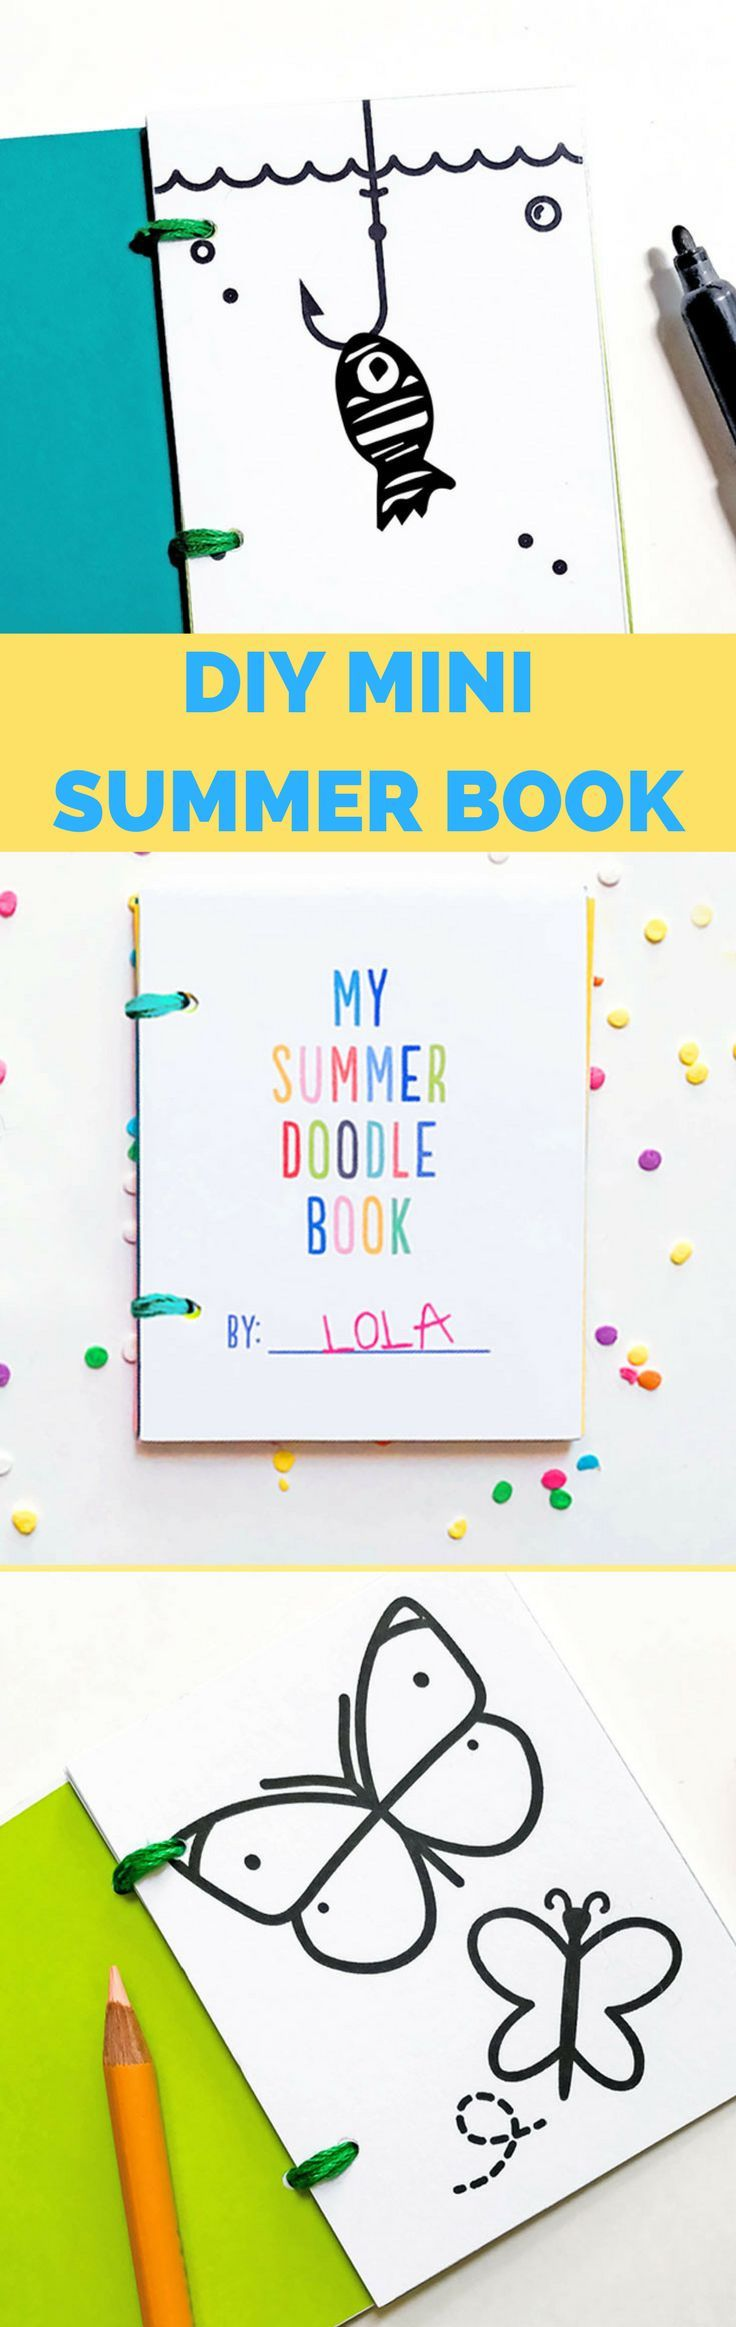 DIY Mini Summer Doodle Books with Free Printables. Adorable summer coloring, art project and gift kids can make for themselves and friends.